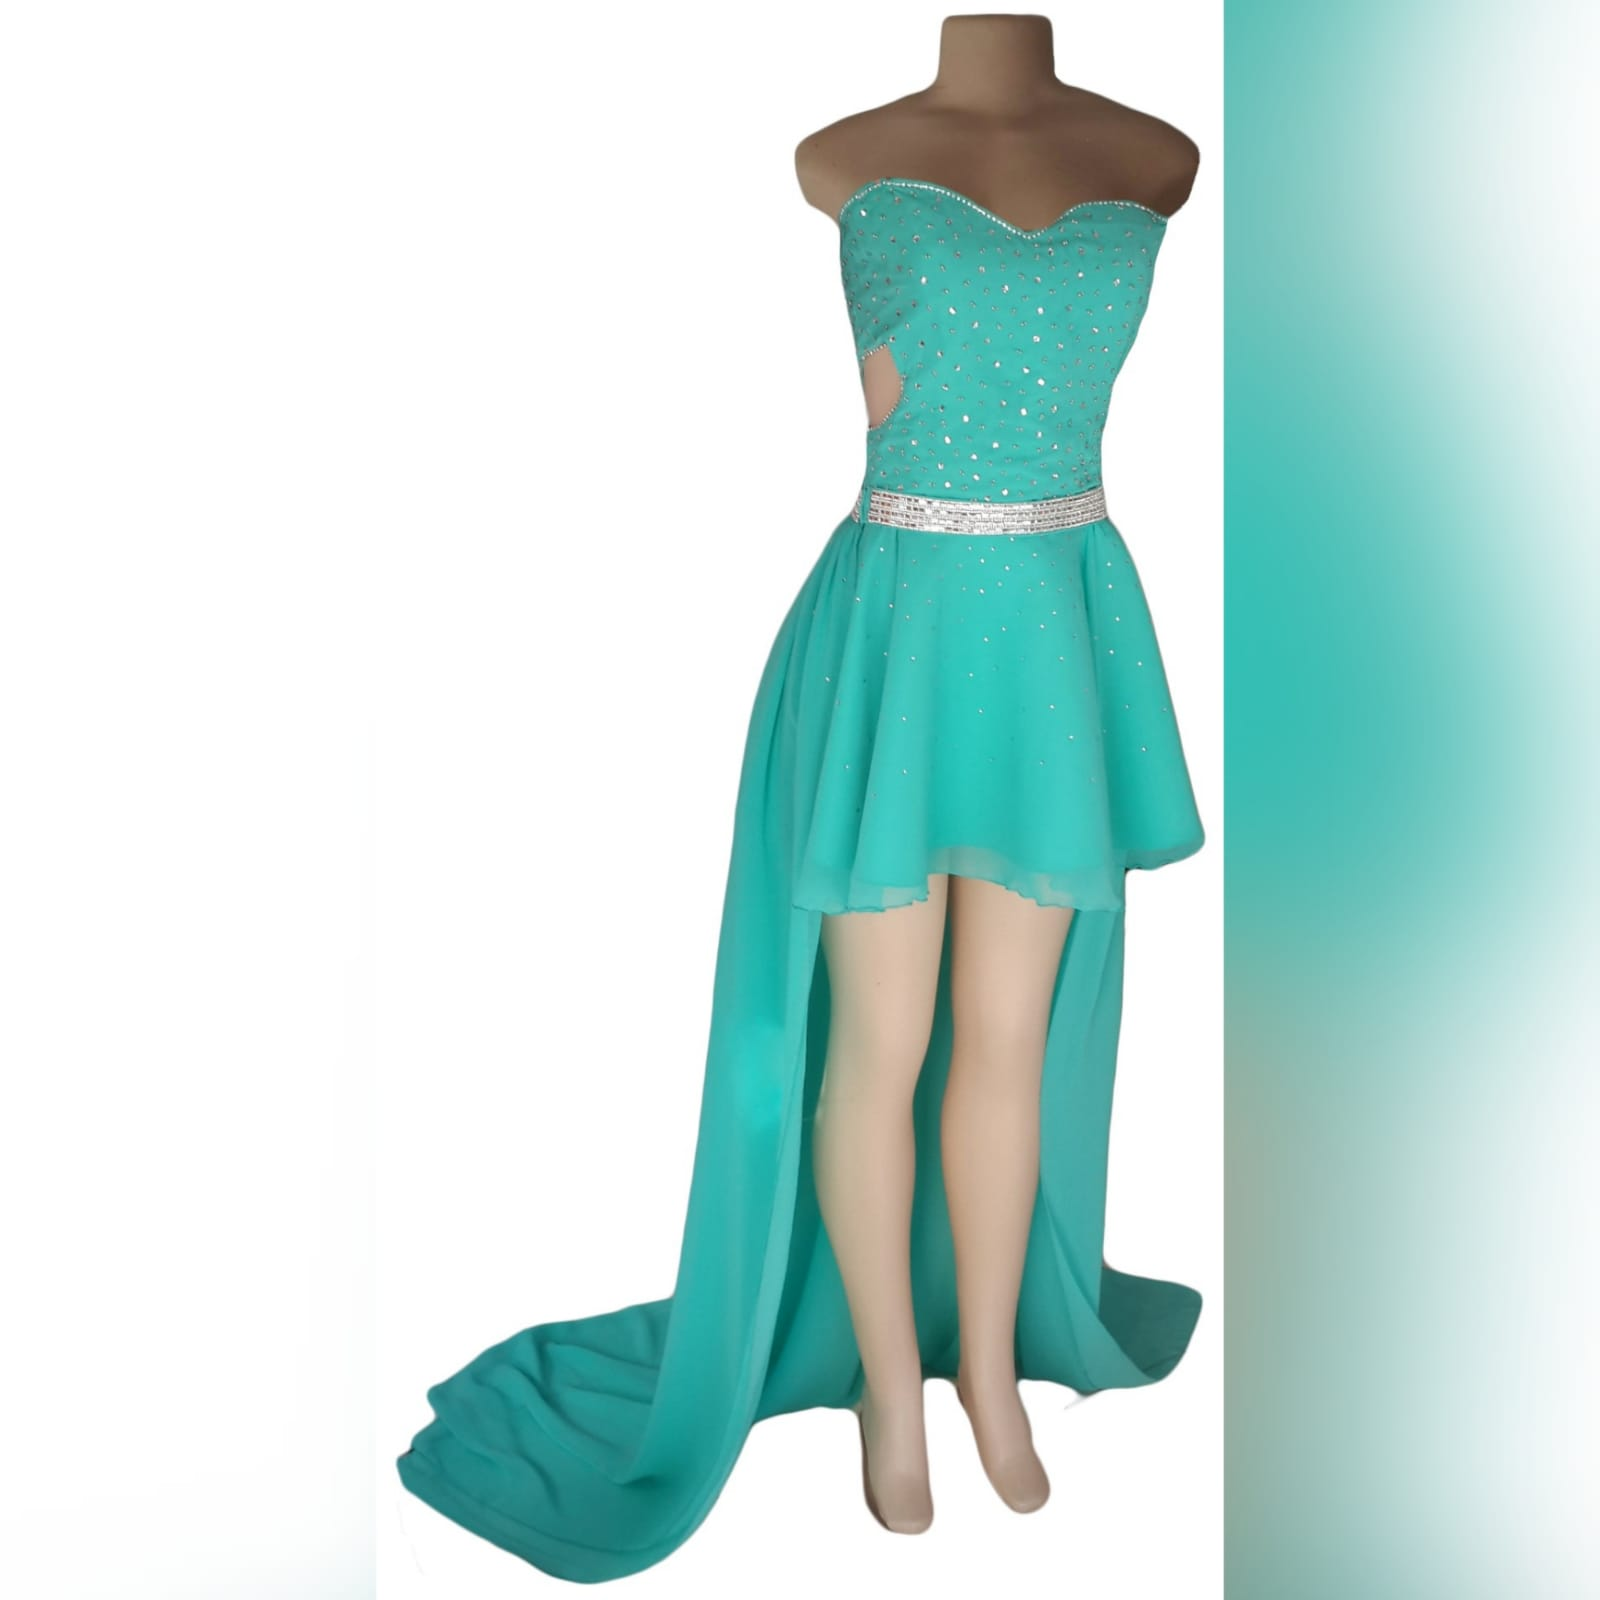 Turquoise 2 piece high low prom dress 6 turquoise 2 piece high low prom dress. Boobtube short dress with a sweetheart neckline and side tummy opening, lace-up back with bodice beaded in silver. With a detachable chiffon train creating a high low effect, with a wide silver belt.